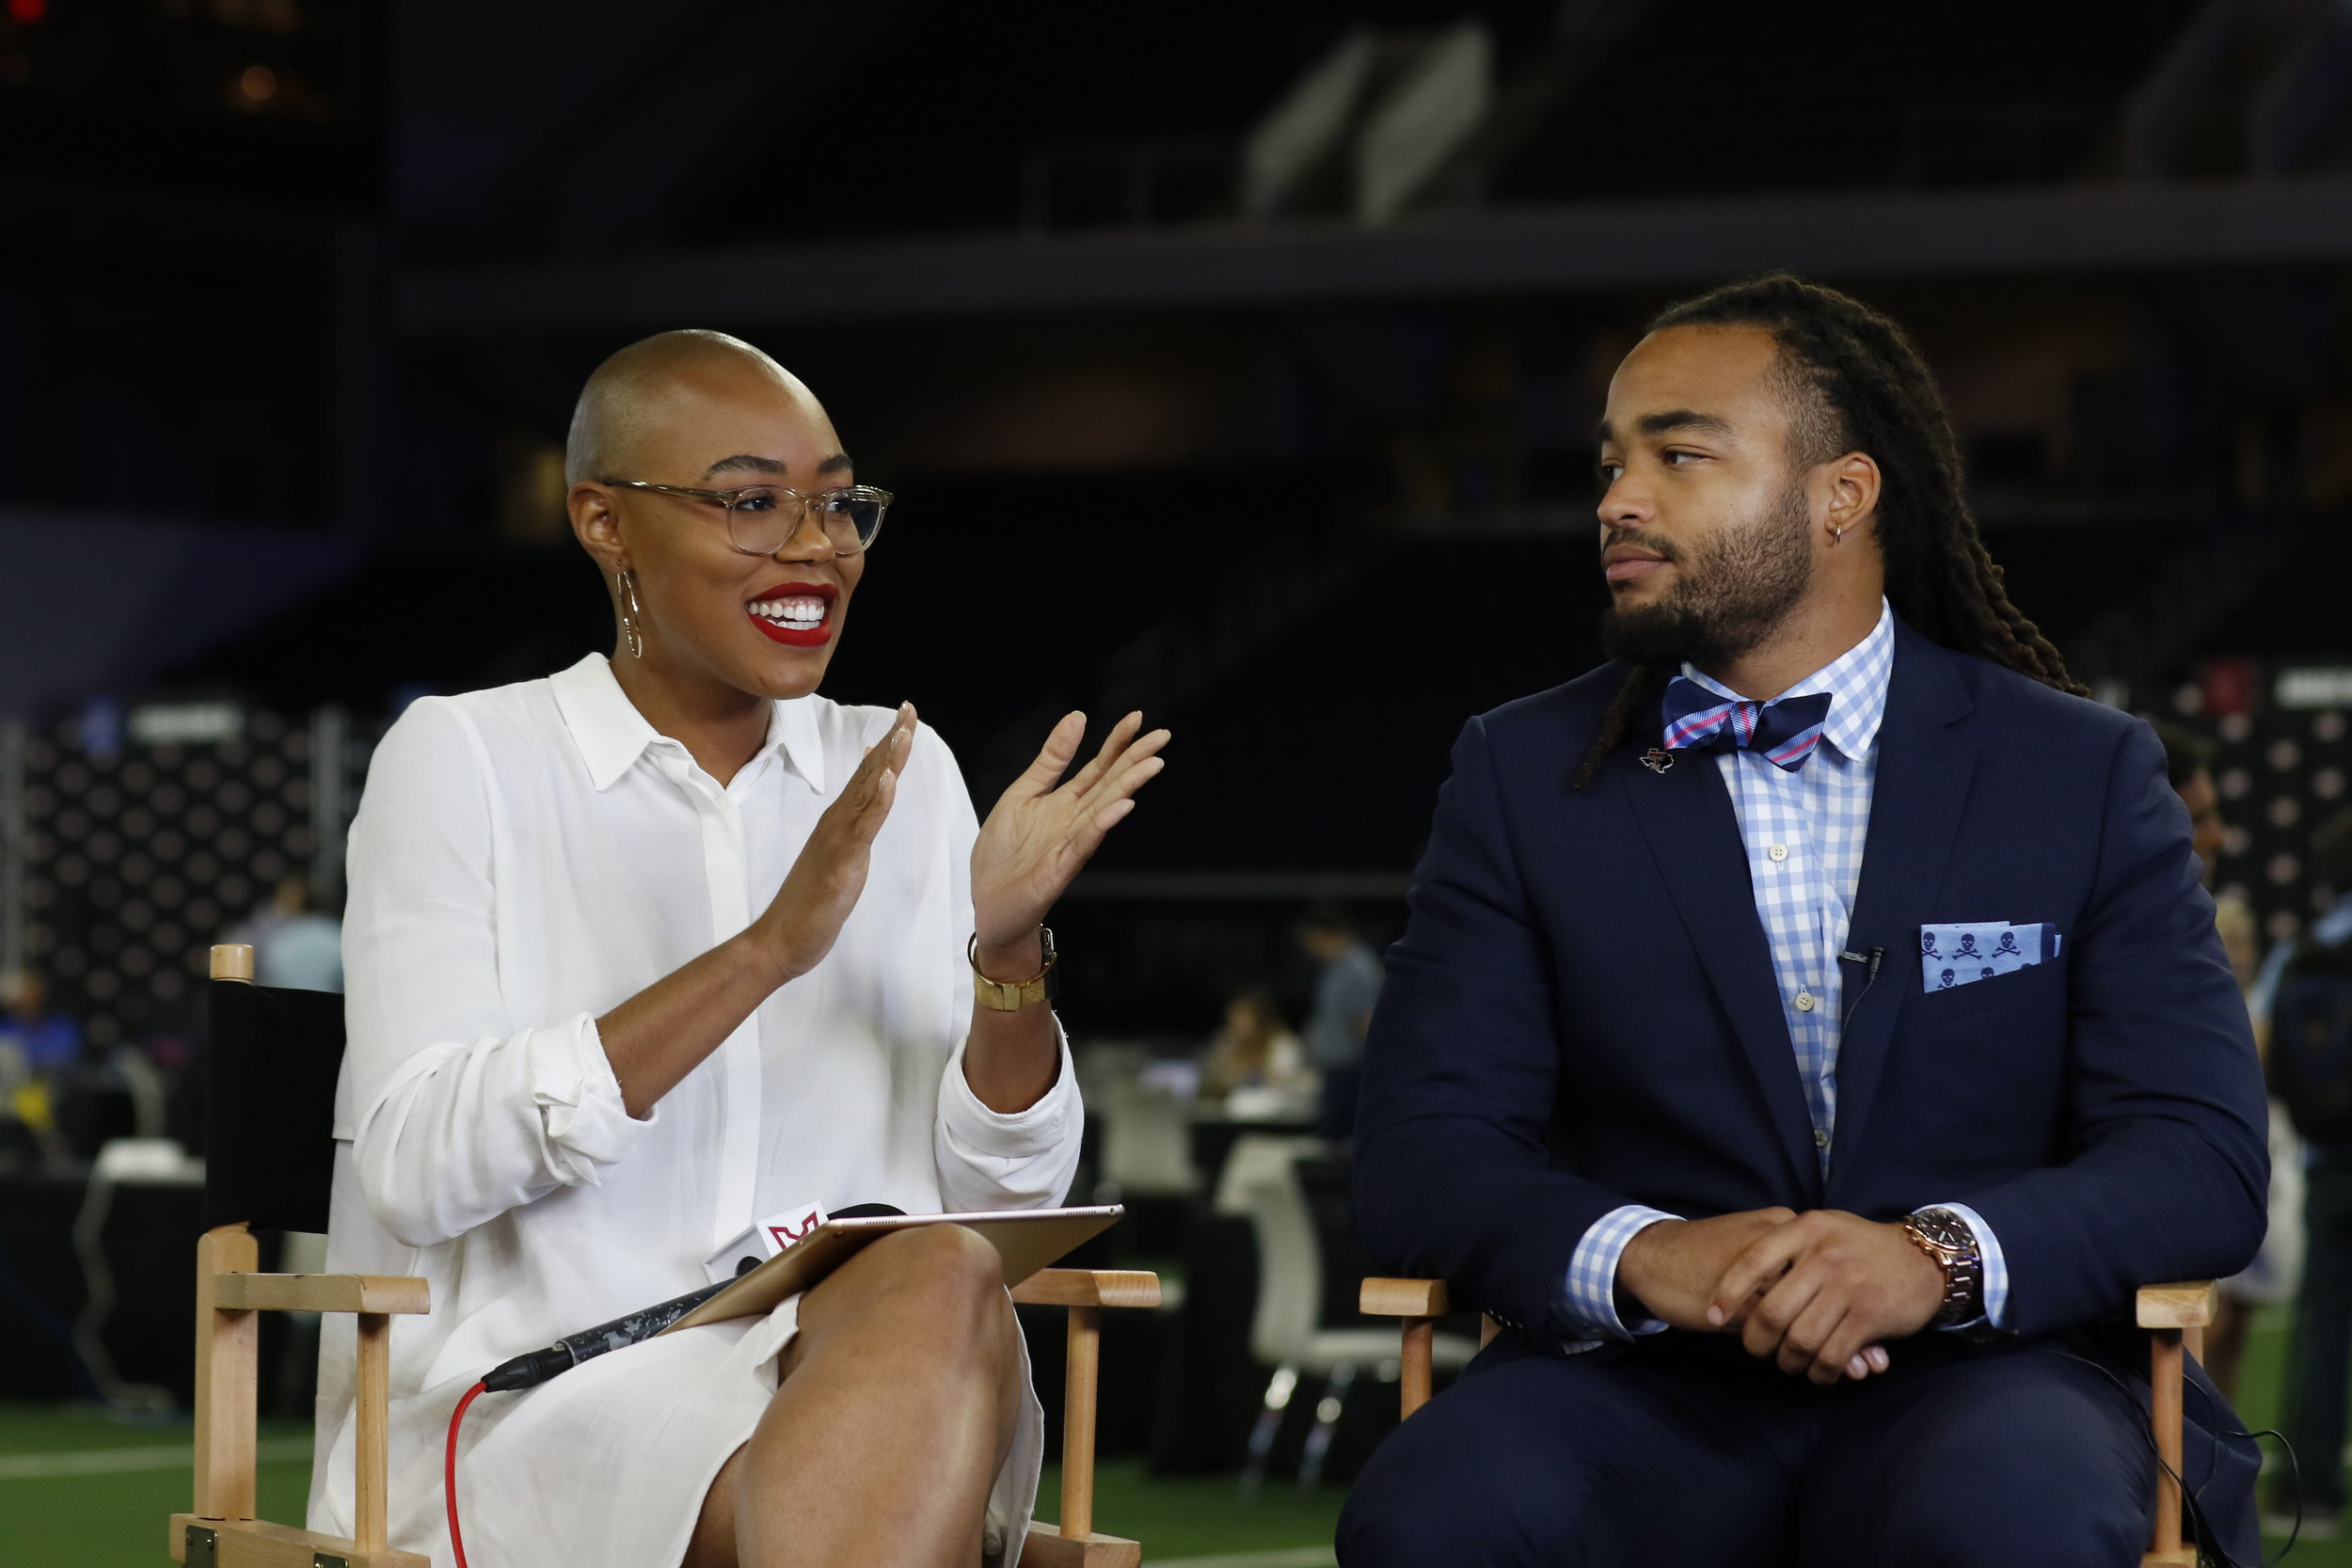 Texas Tech LB Dakota Allen and Big 12's Christine Williamson  _LPI1217.jpg